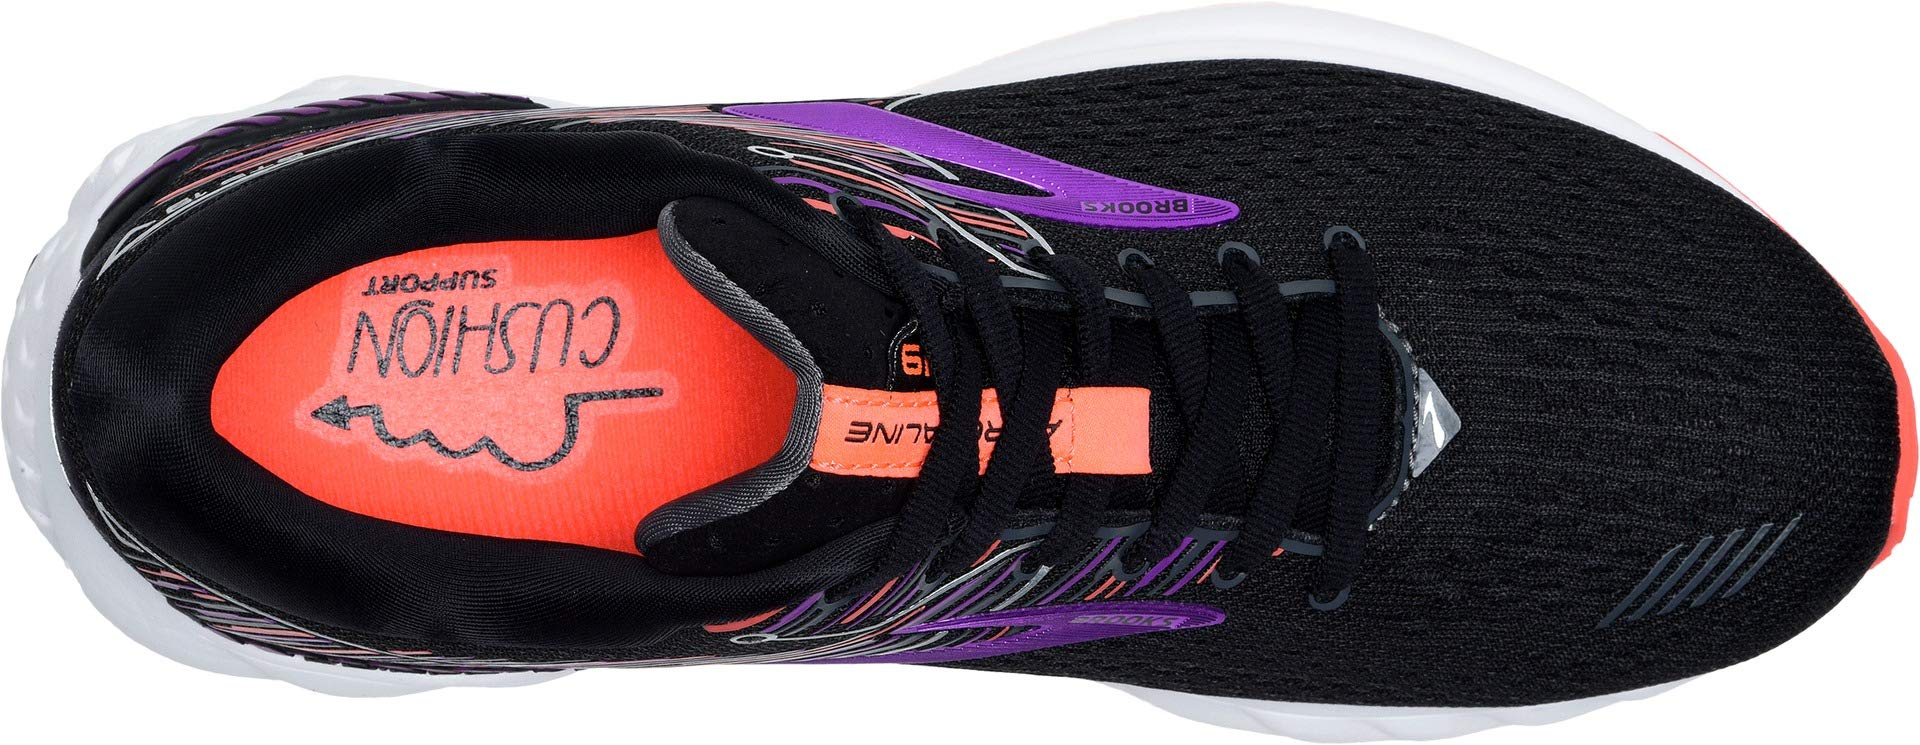 Brooks Women's Adrenaline GTS 19 Black/Purple/Coral 5.5 B US by Brooks (Image #2)